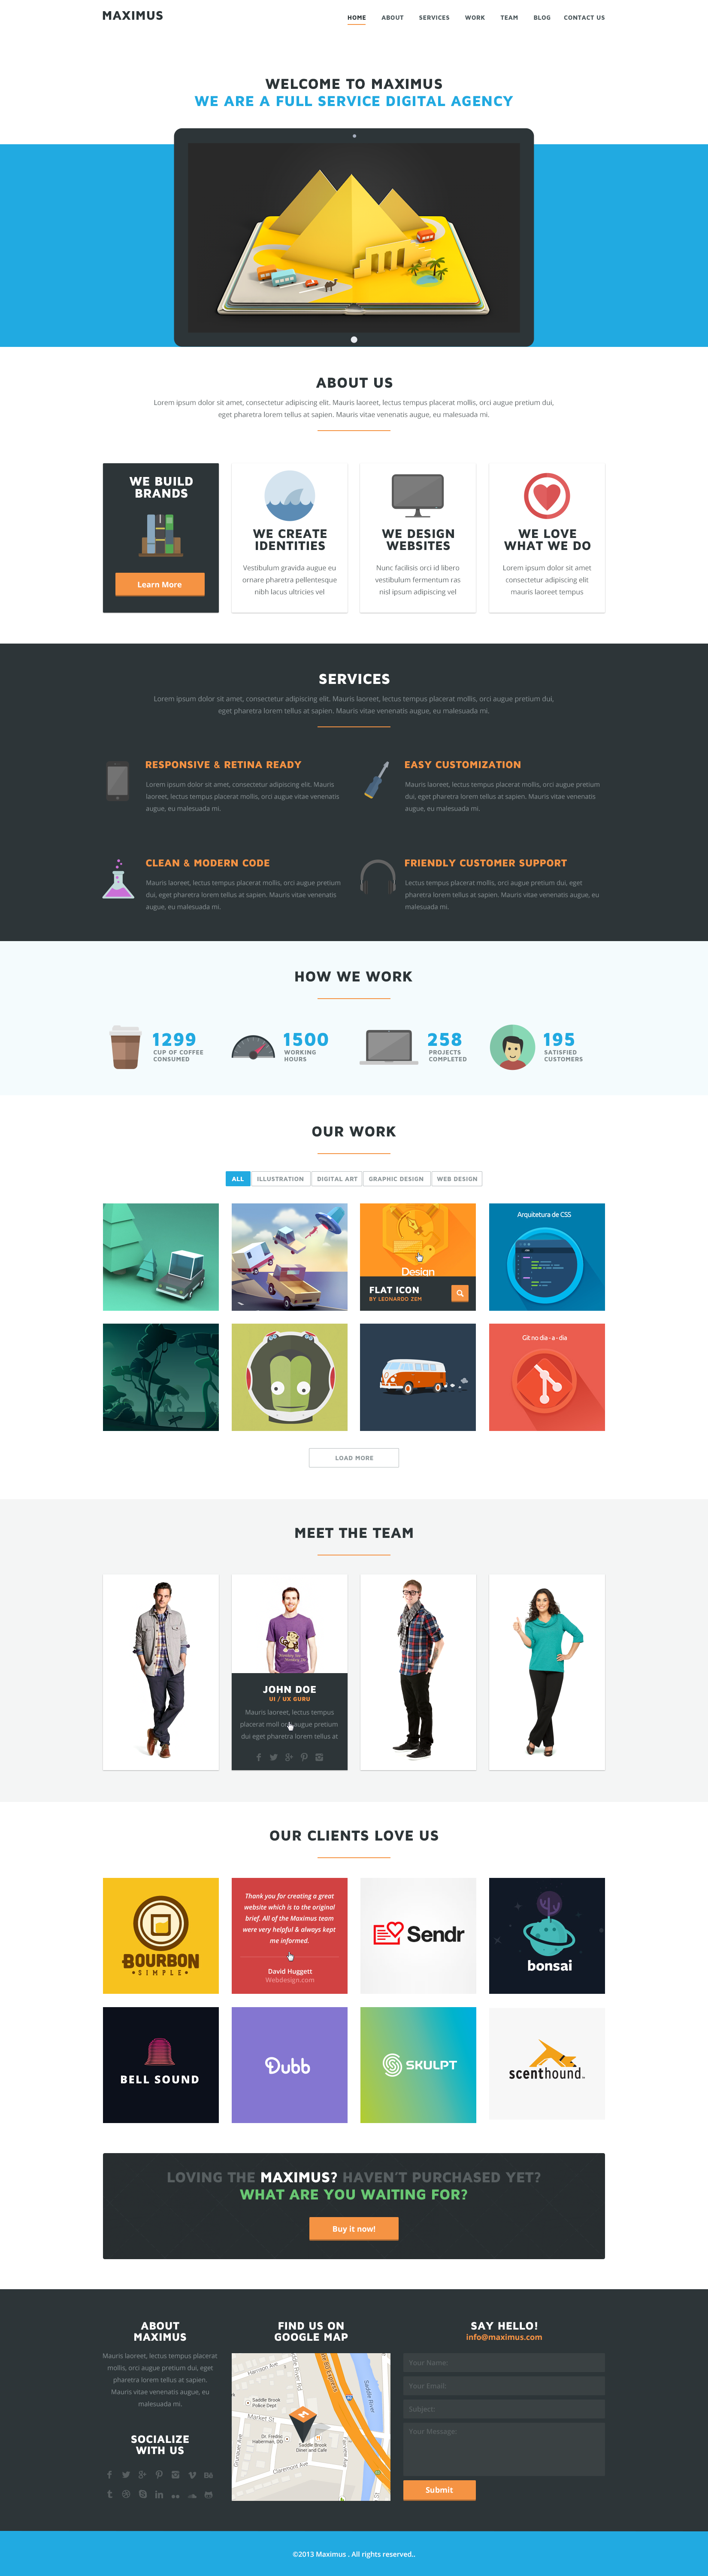 Maximus - PSD Template by Nas-wd